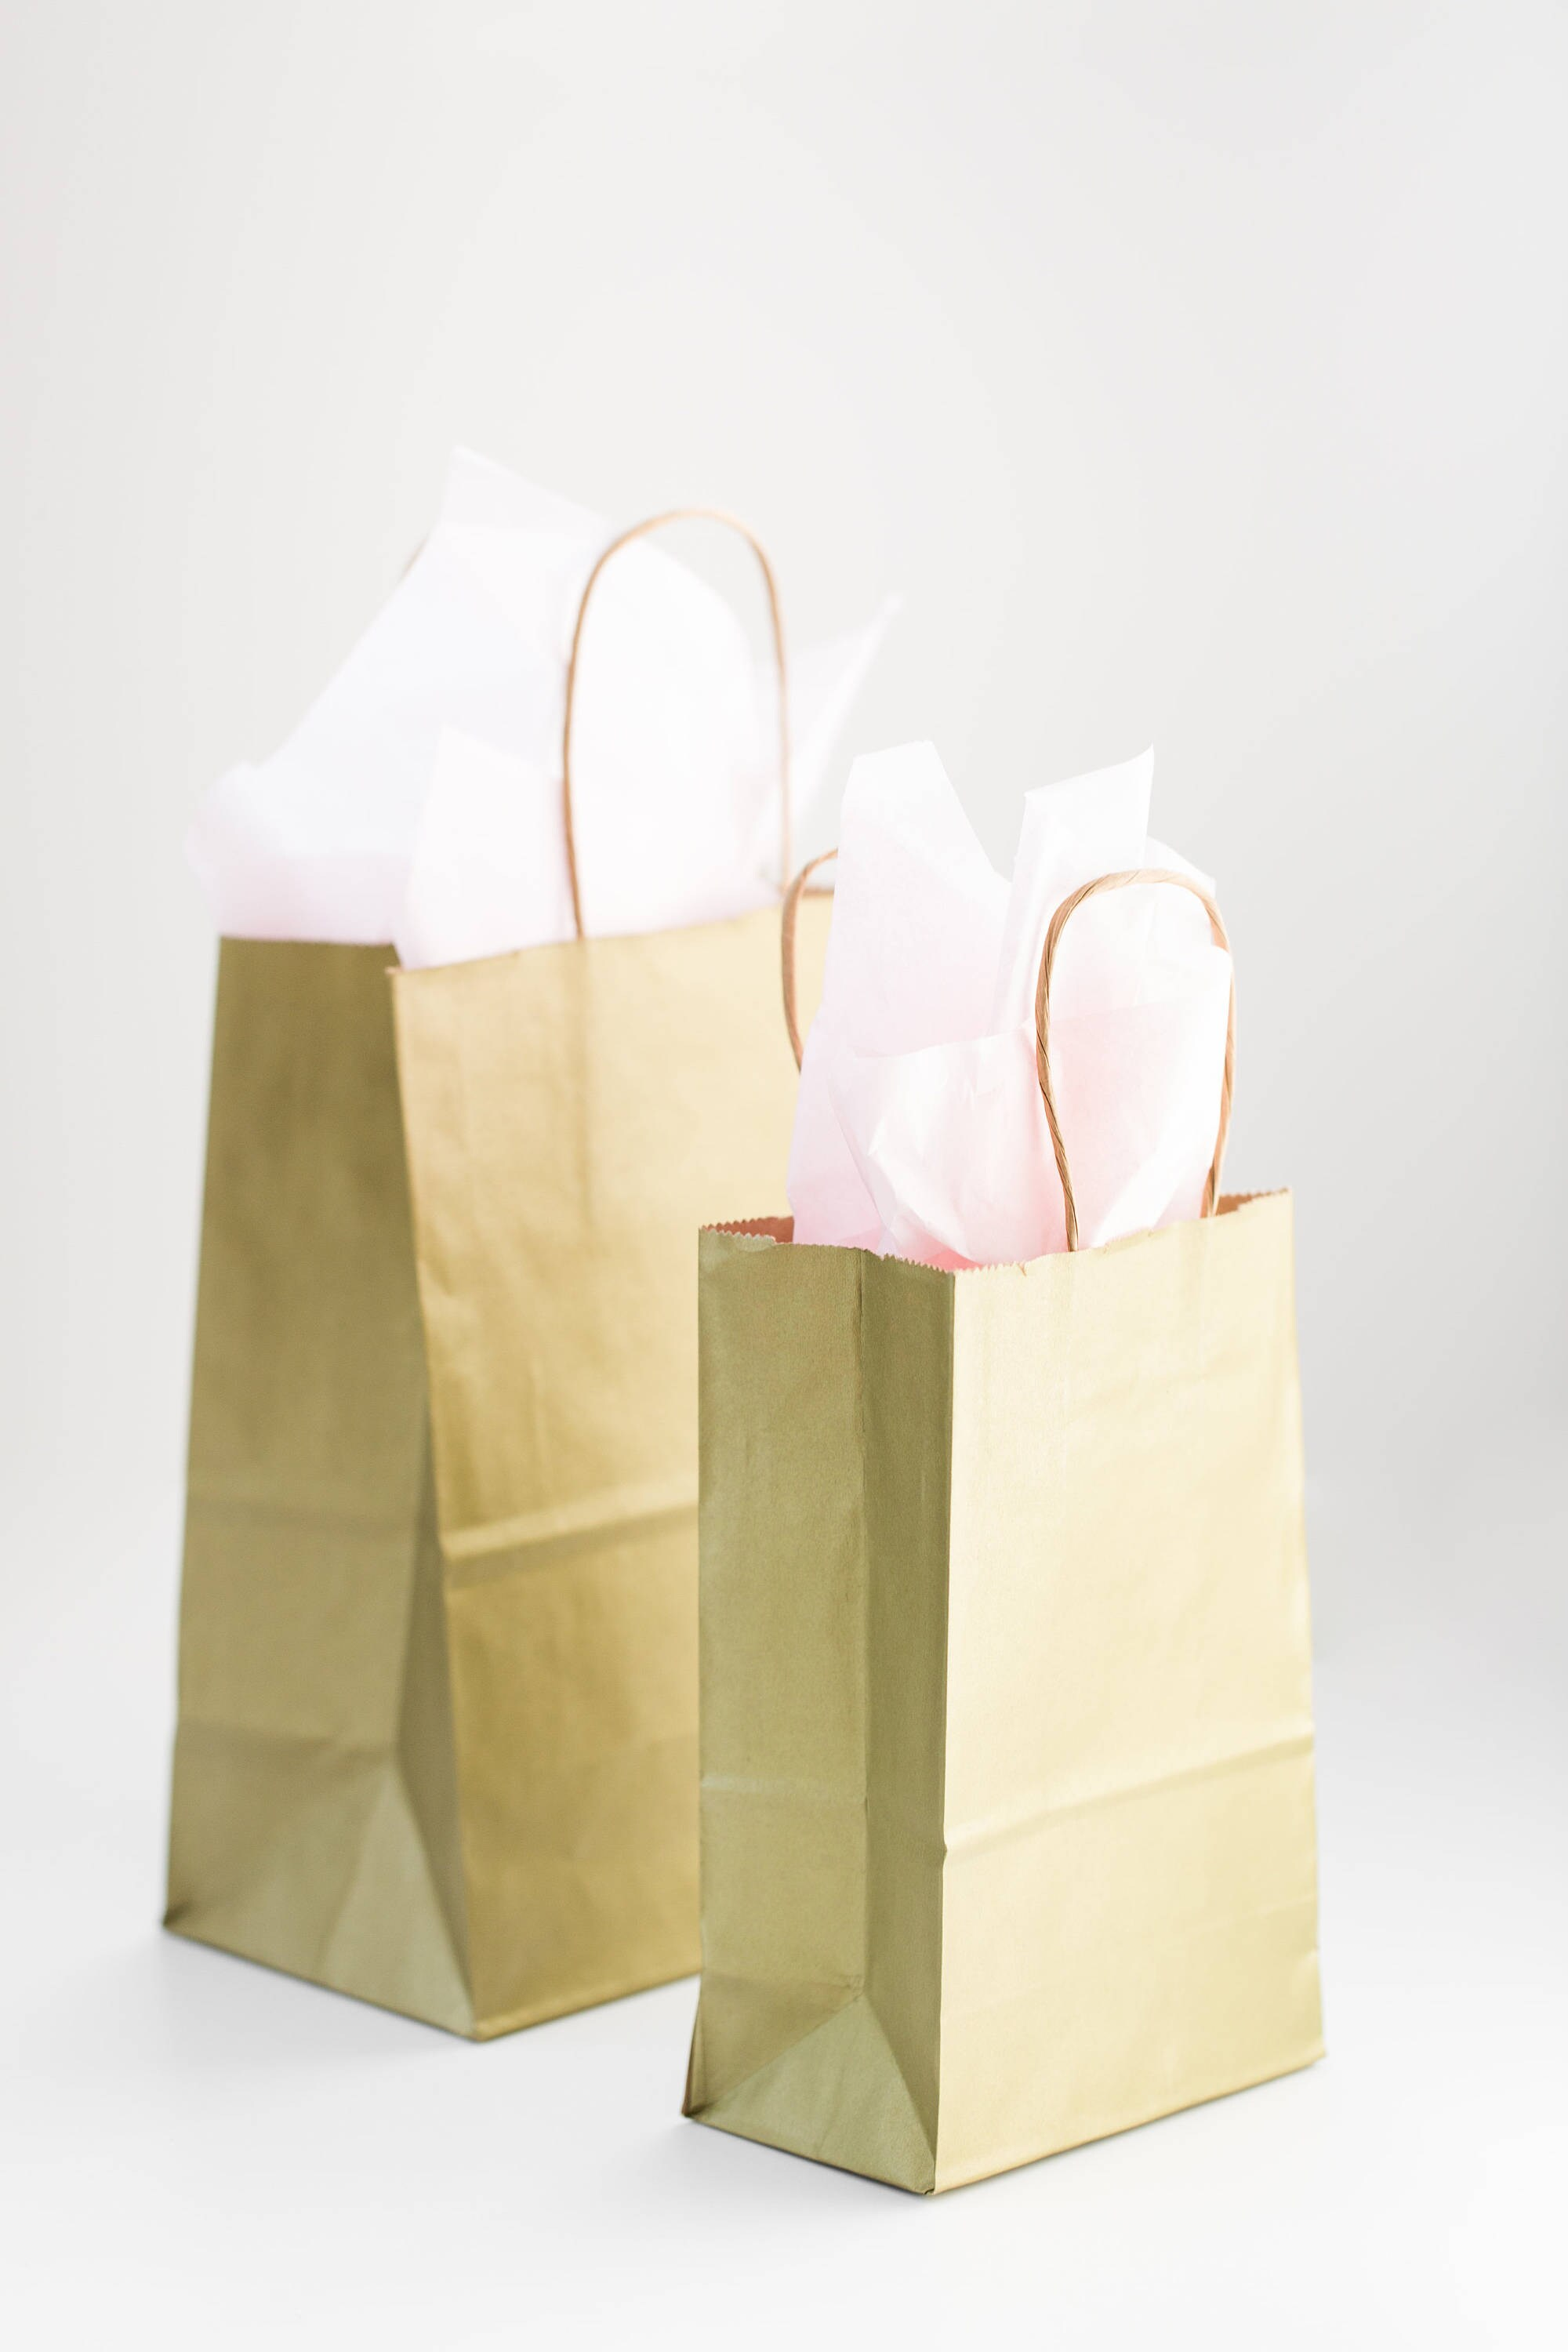 50 Gold Gift Bags with Handles for Wedding Guests, Welcome Bag ...